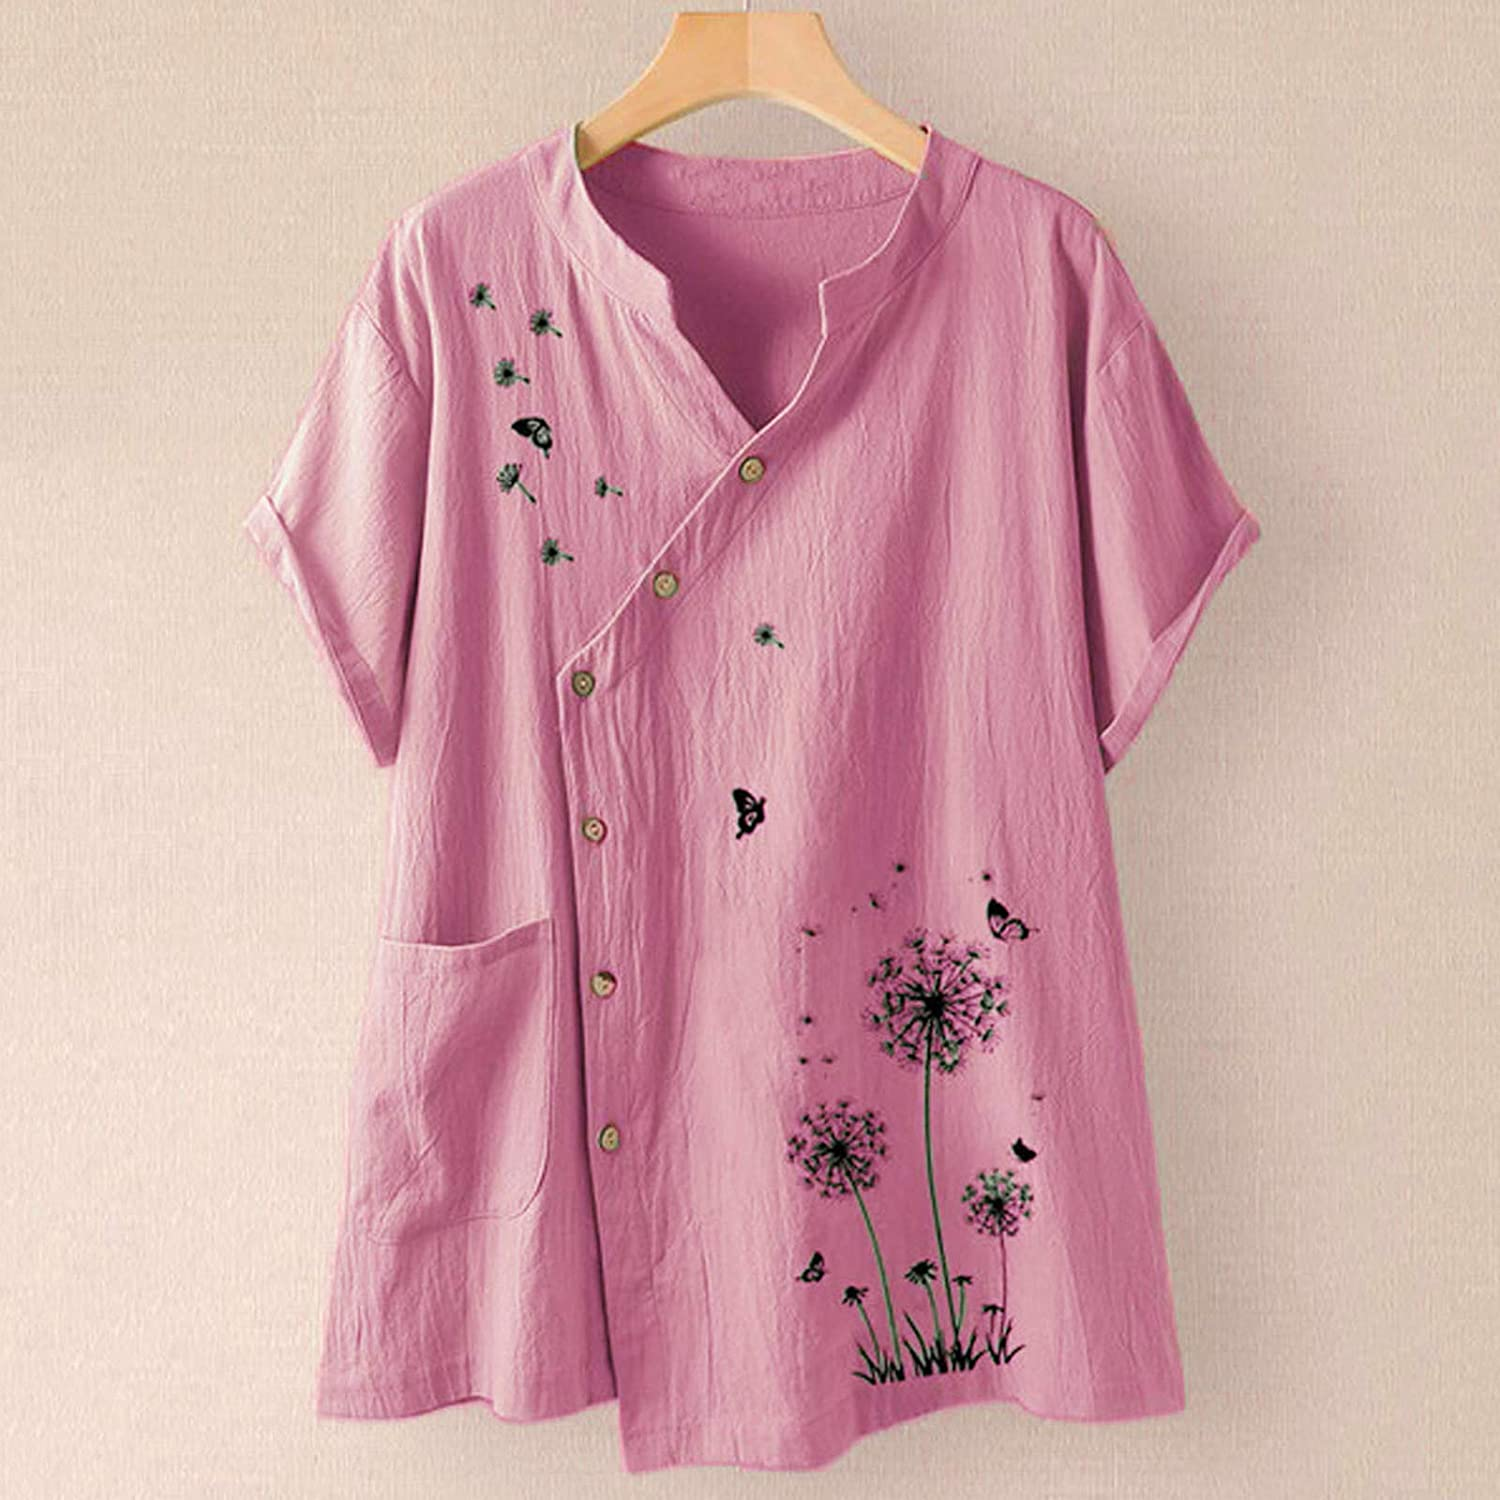 Gwewei4df Plus Size Short Sleeve Shirts for Super-cheap Tops Casual Max 87% OFF Women Fl